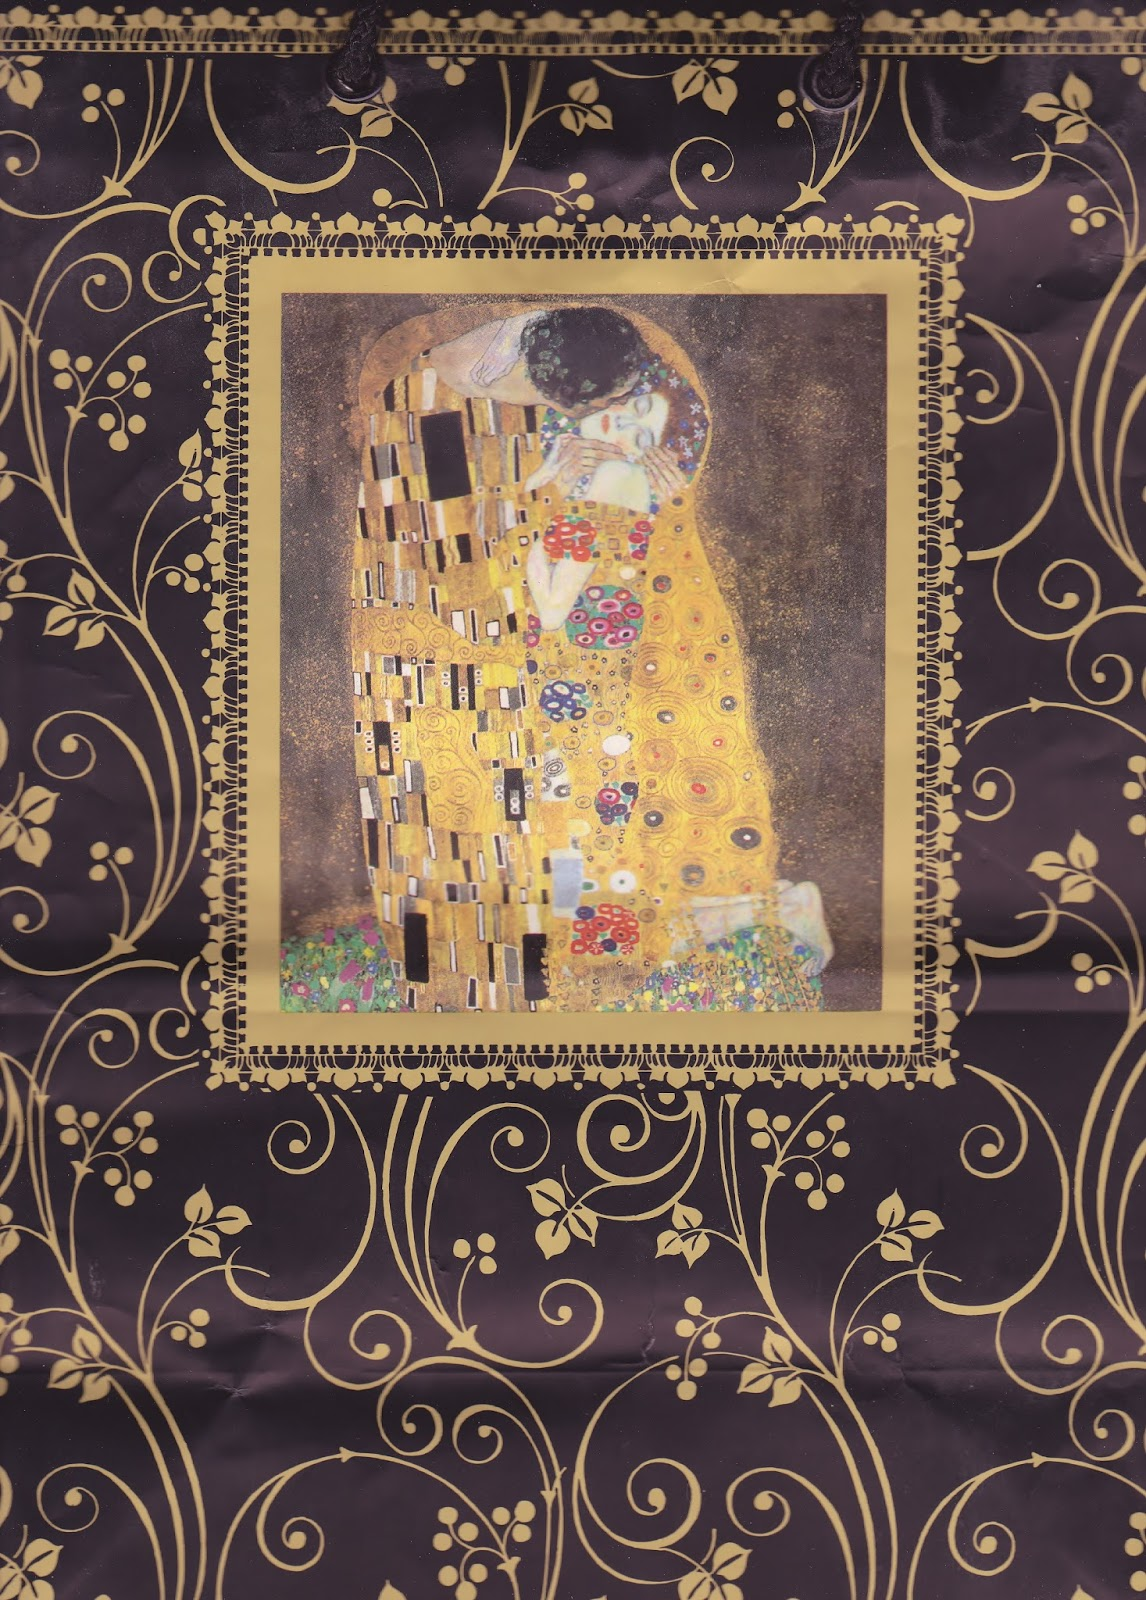 TeawomanTarot: Testing, Testing: The Golden Tarot Of Klimt